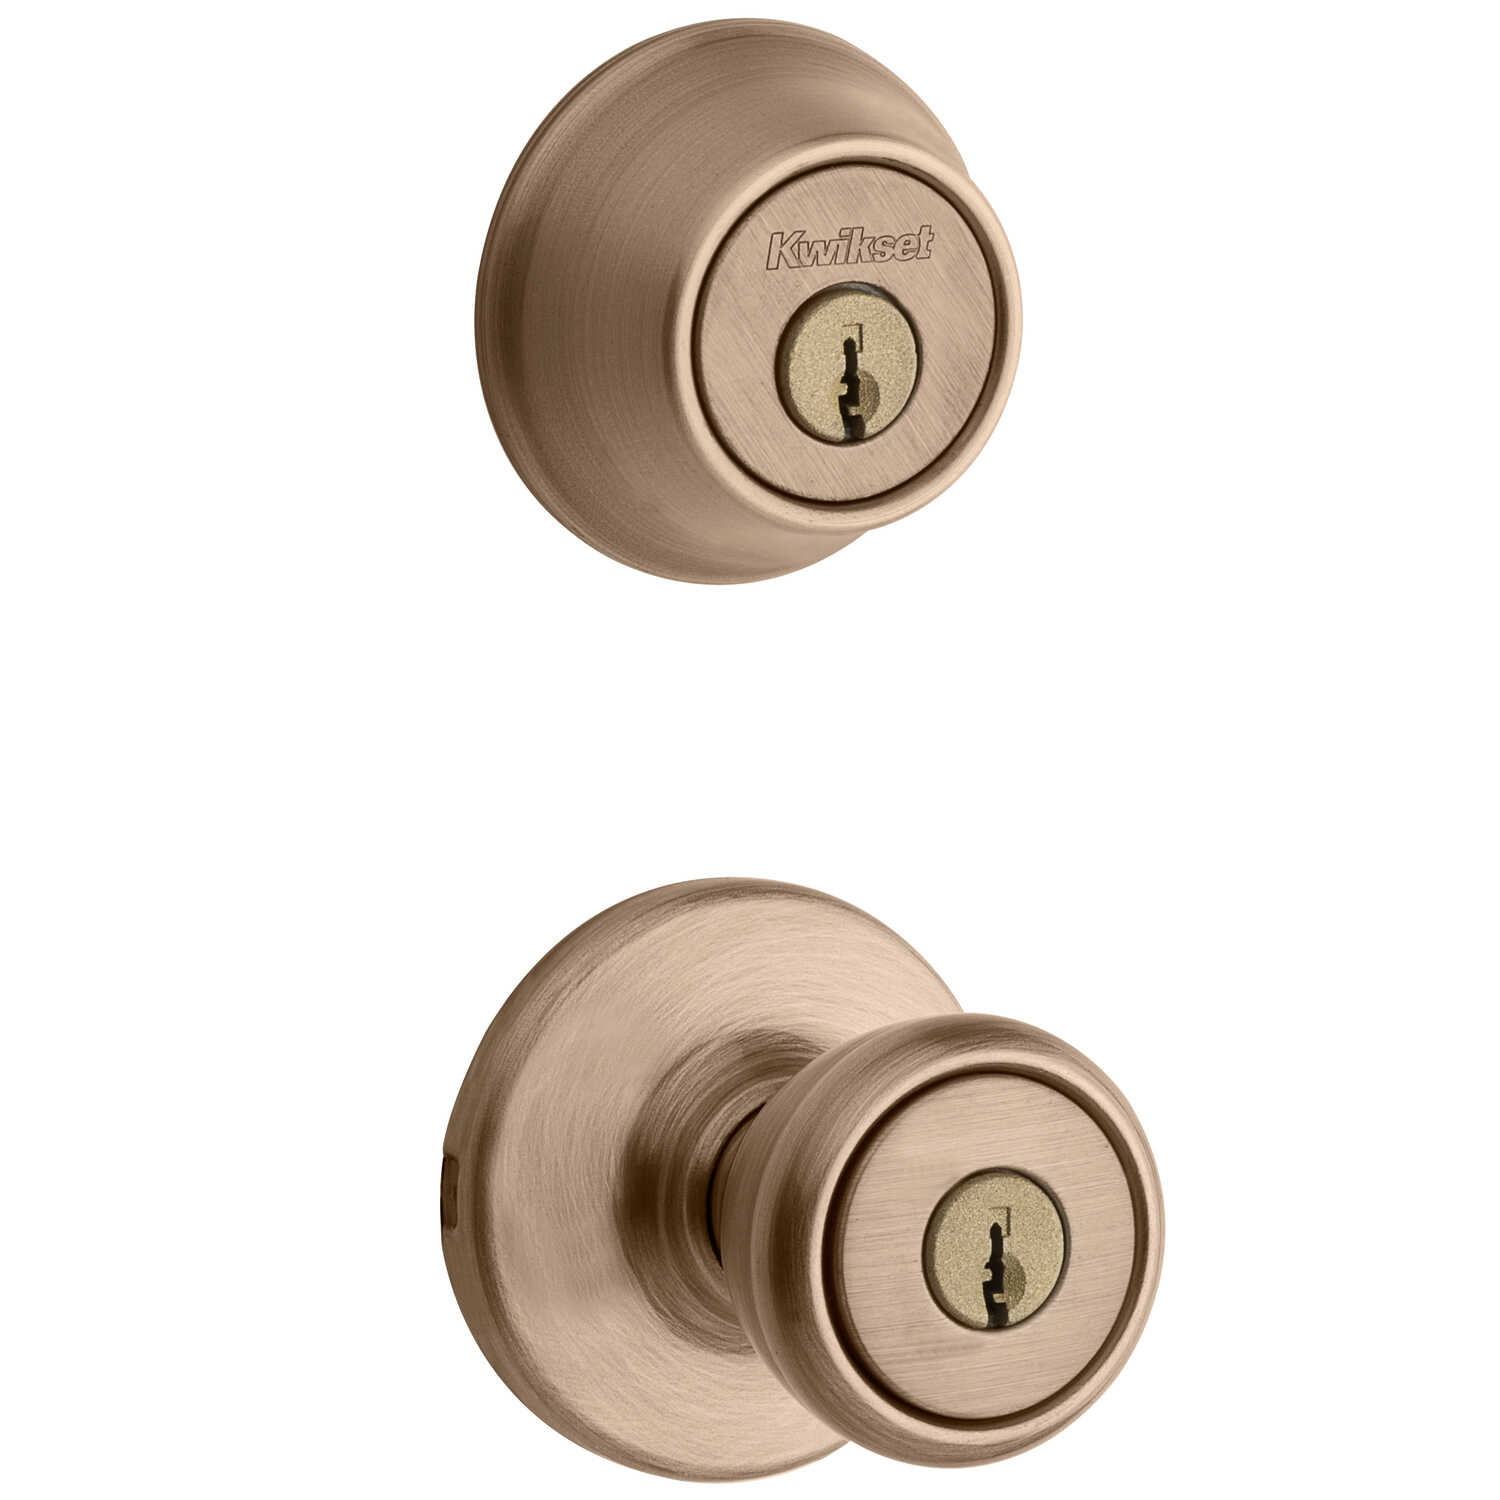 Kwikset  Tylo  Antique Brass  Steel  Knob and Double Cylinder Deadbolt  ANSI/BHMA Grade 3  1-3/4 in.